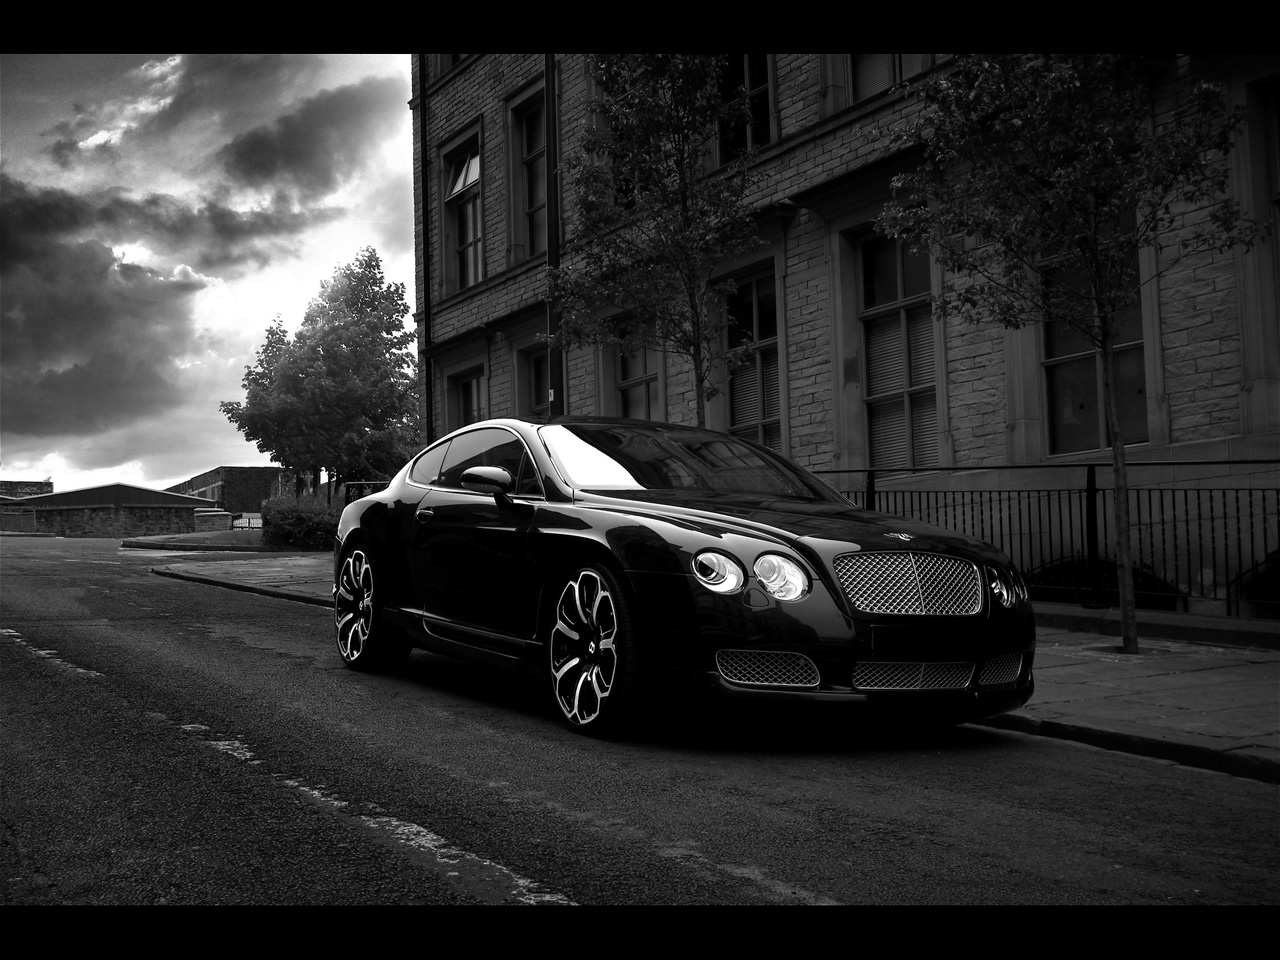 Cars Hd Wallpapers For Blackberry: TOP HD WALLPAPERS: CARS WALLPAPERS DESKTOP HD